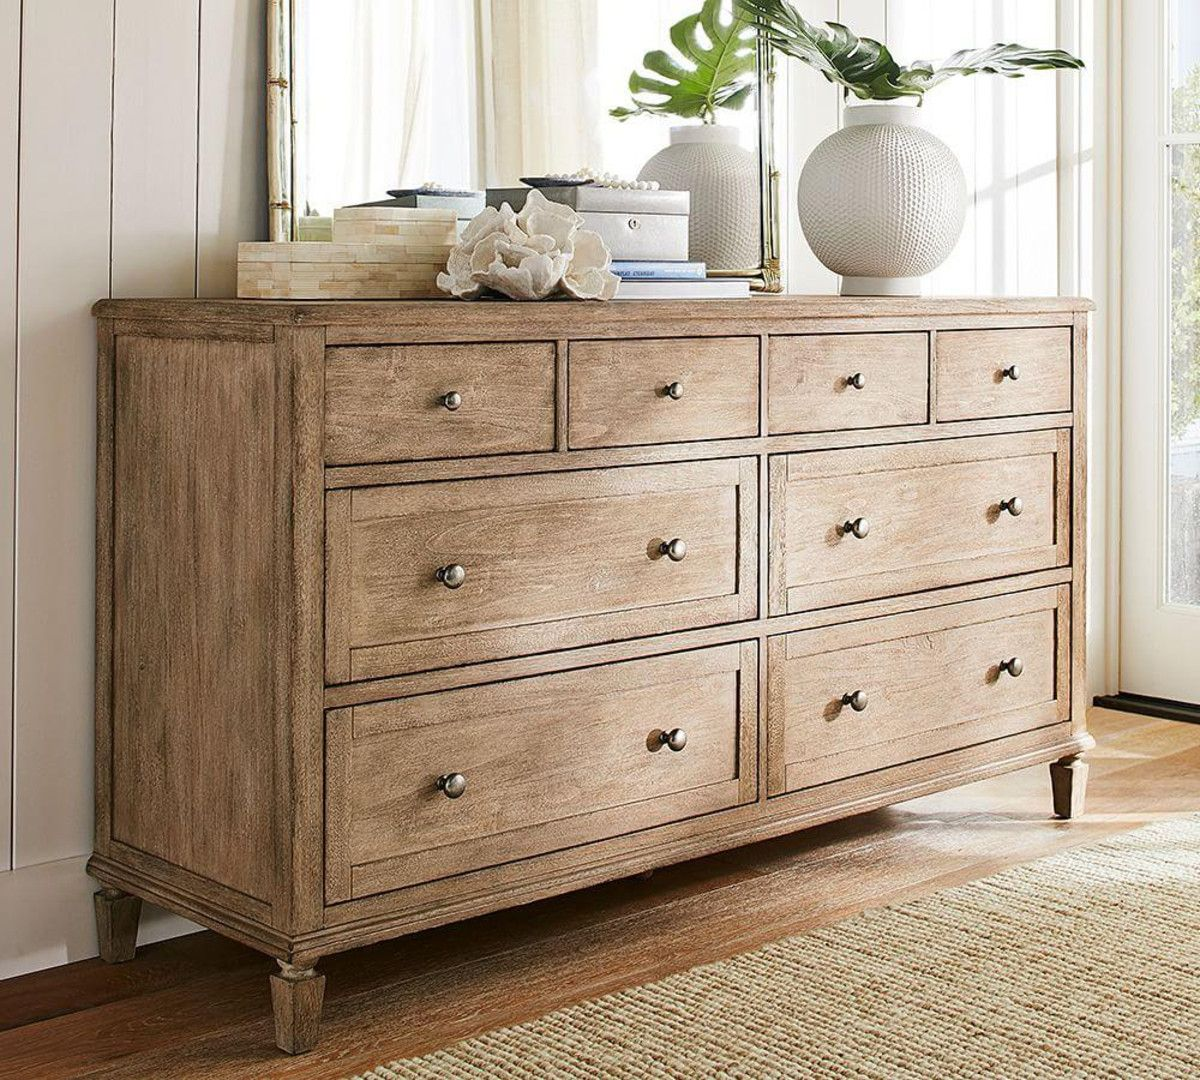 Best Sausalito 8 Drawer Extra Wide Dresser In 2020 Furniture 400 x 300